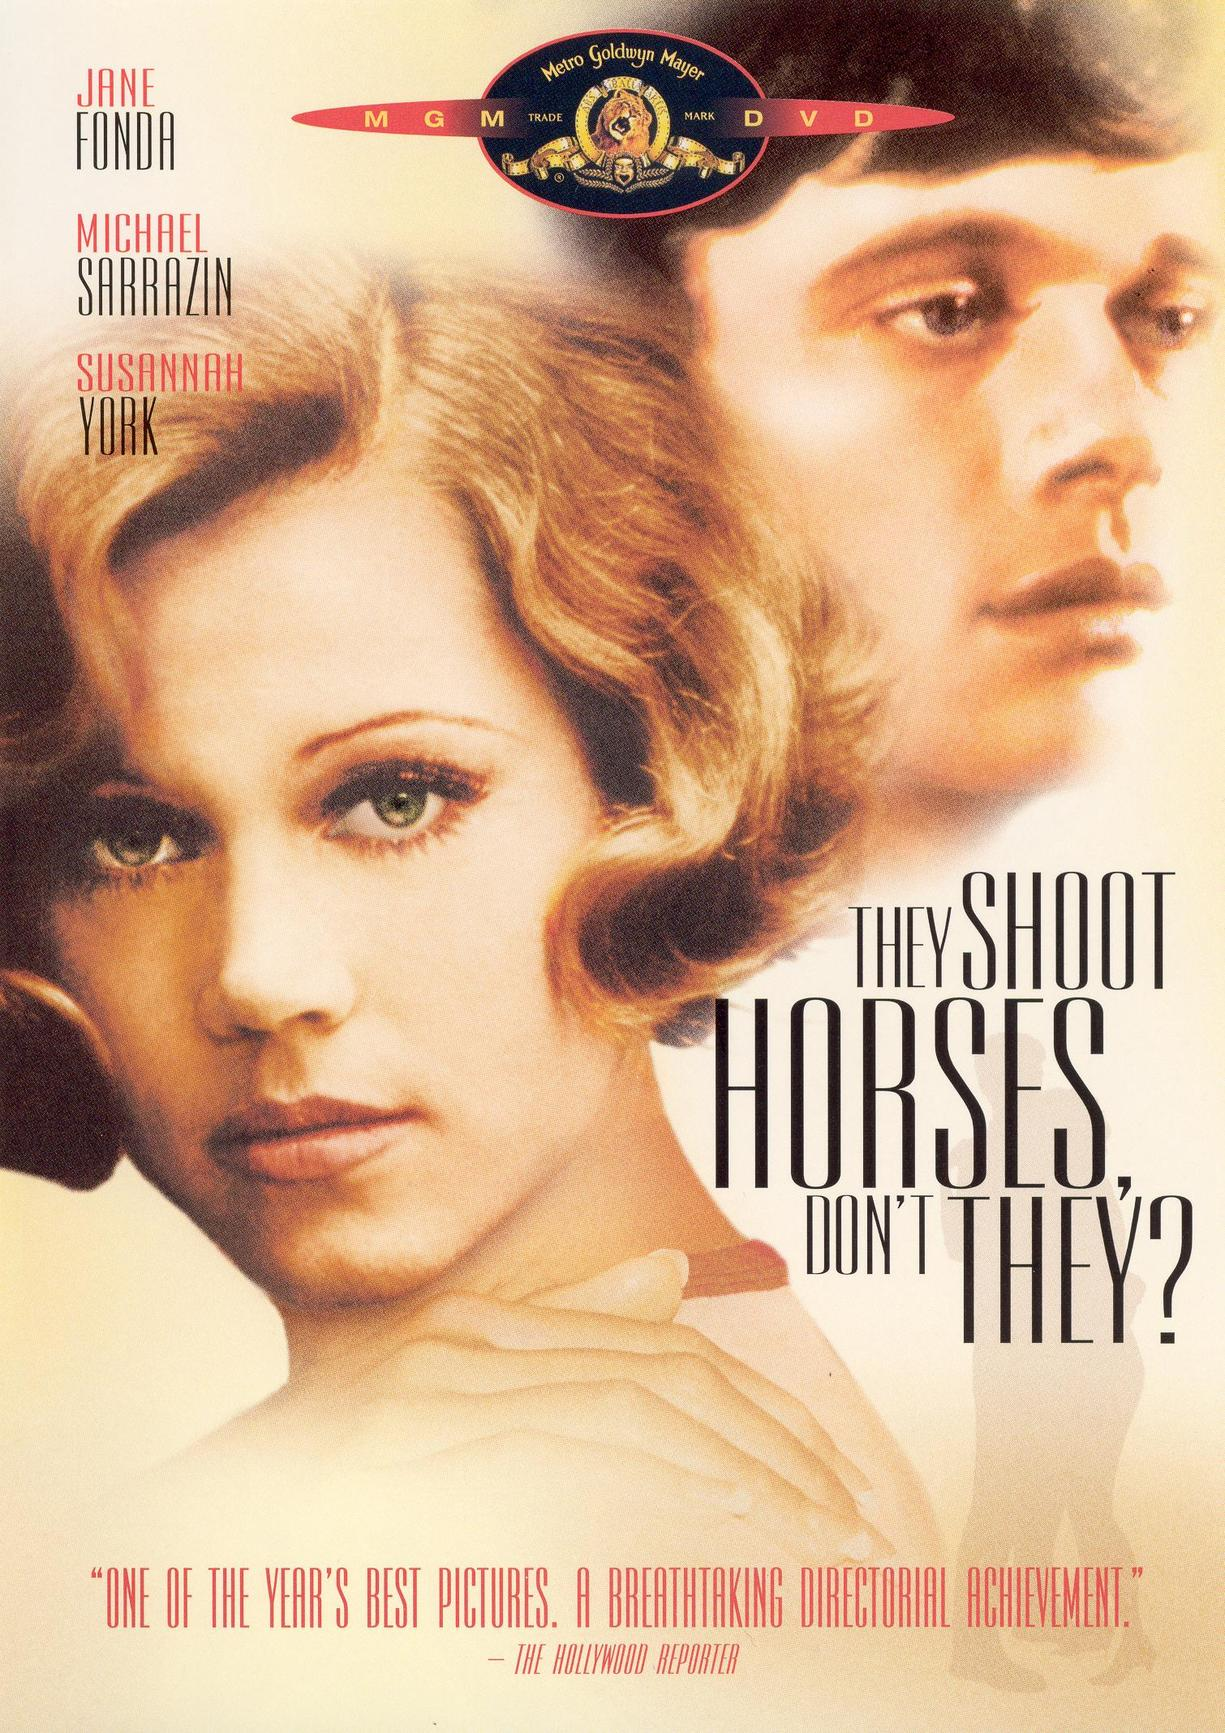 They Shoot Horses, Don't They?